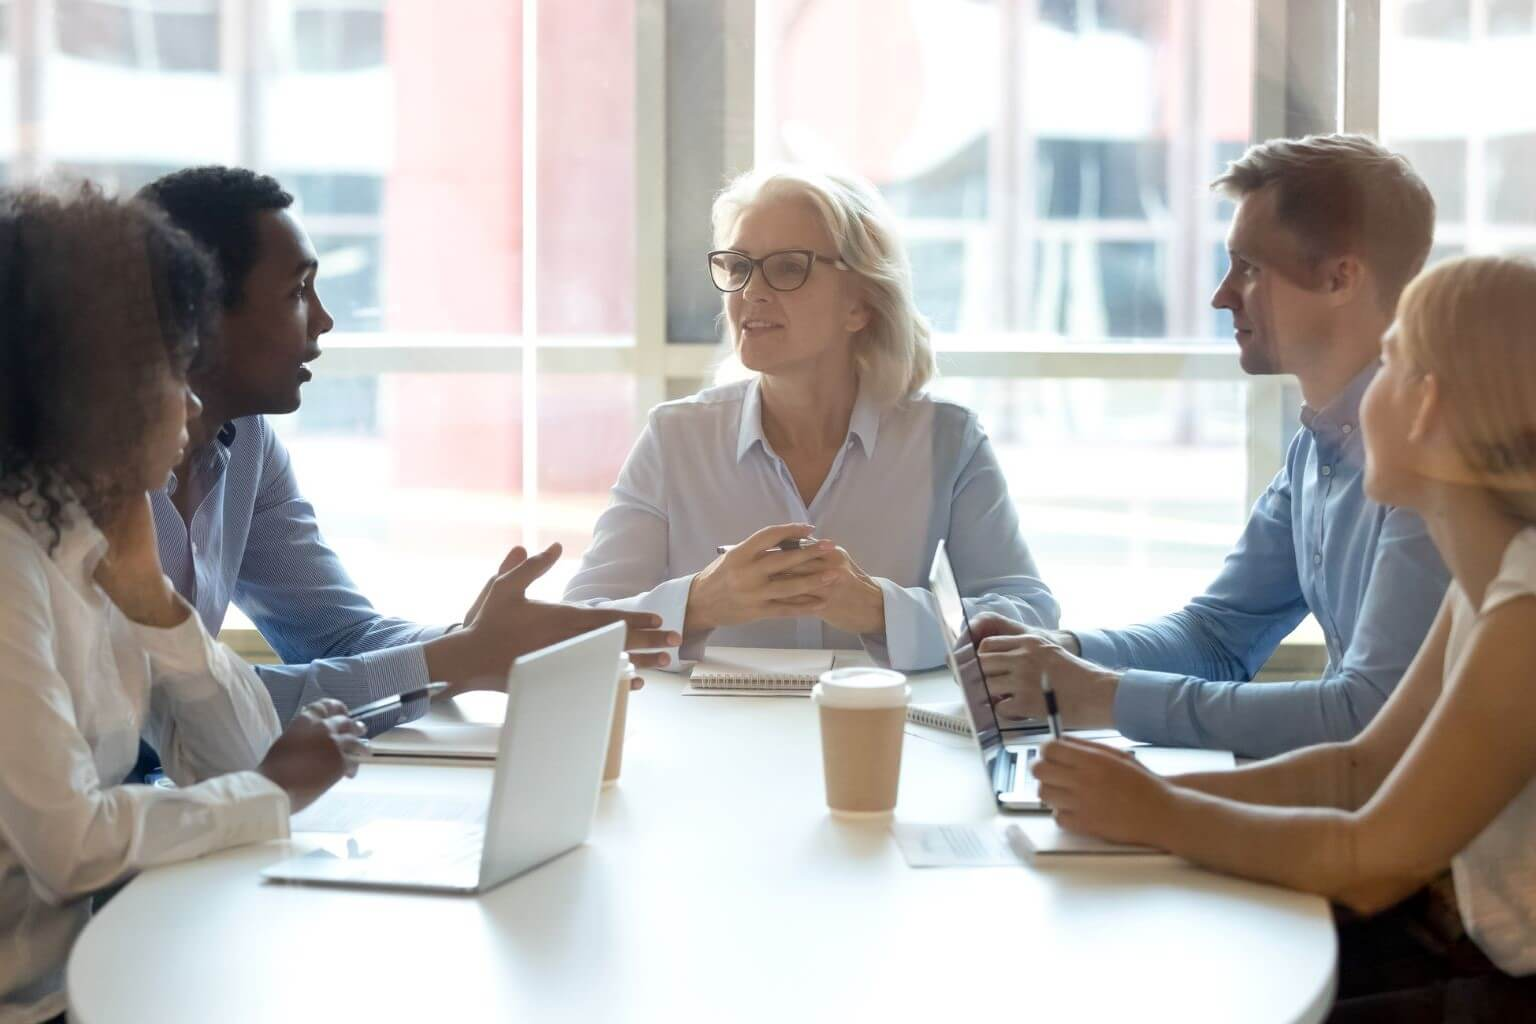 Employees meeting at conference table